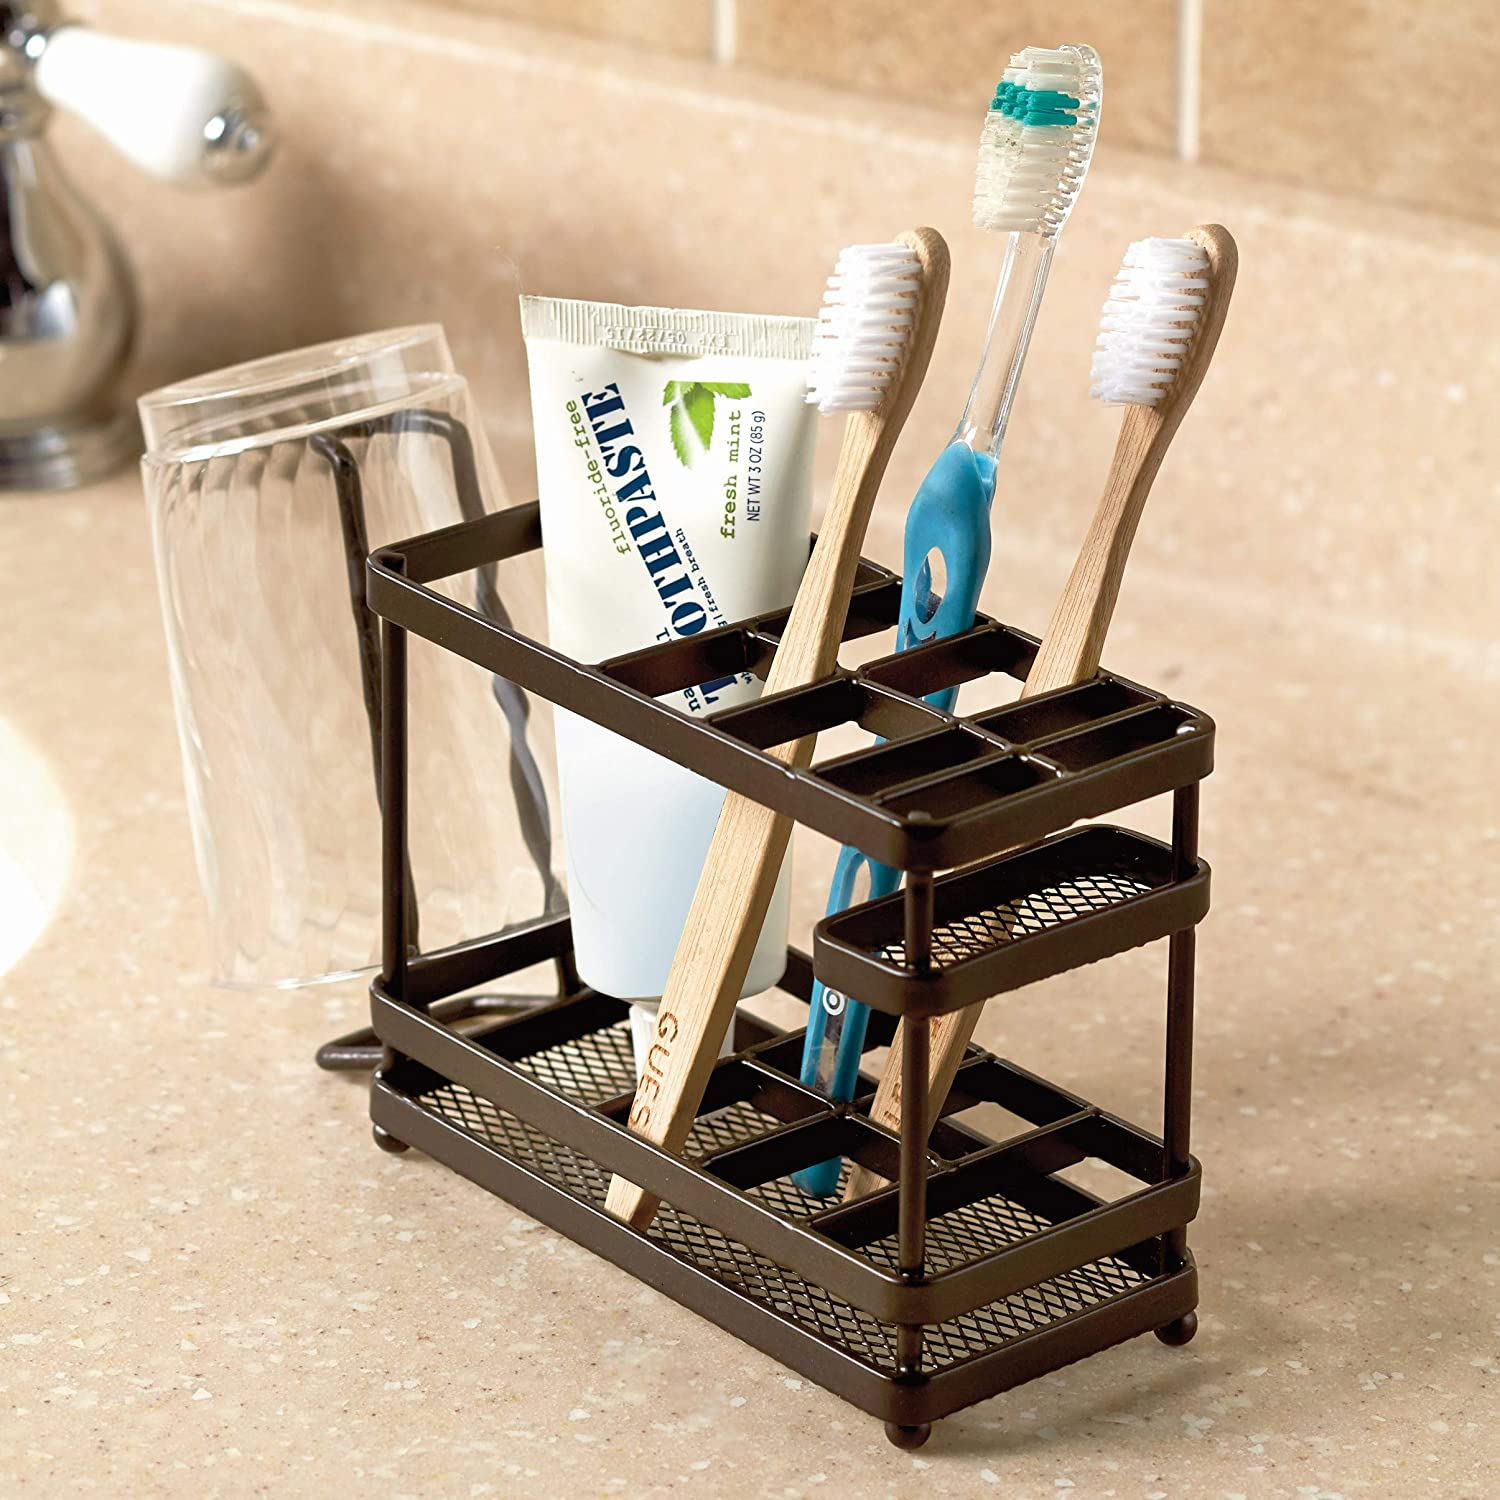 The Lakeside Collection Metal Bathroom Countertop Organizer and Storage Tray - Bronze